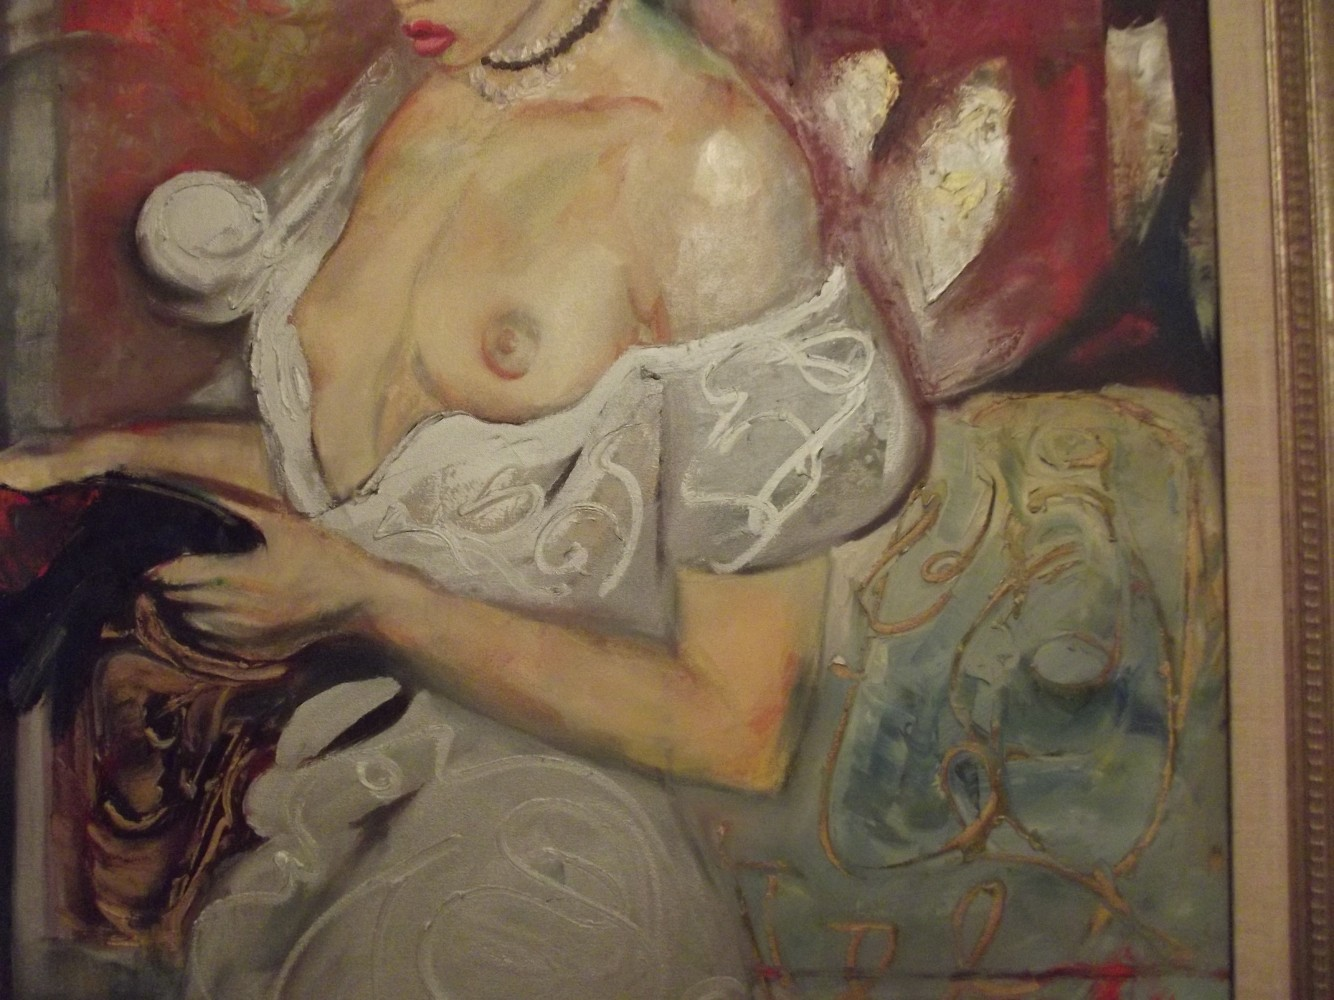 Sensuous Lady, Original Epoch 59x38 by William Tolliver